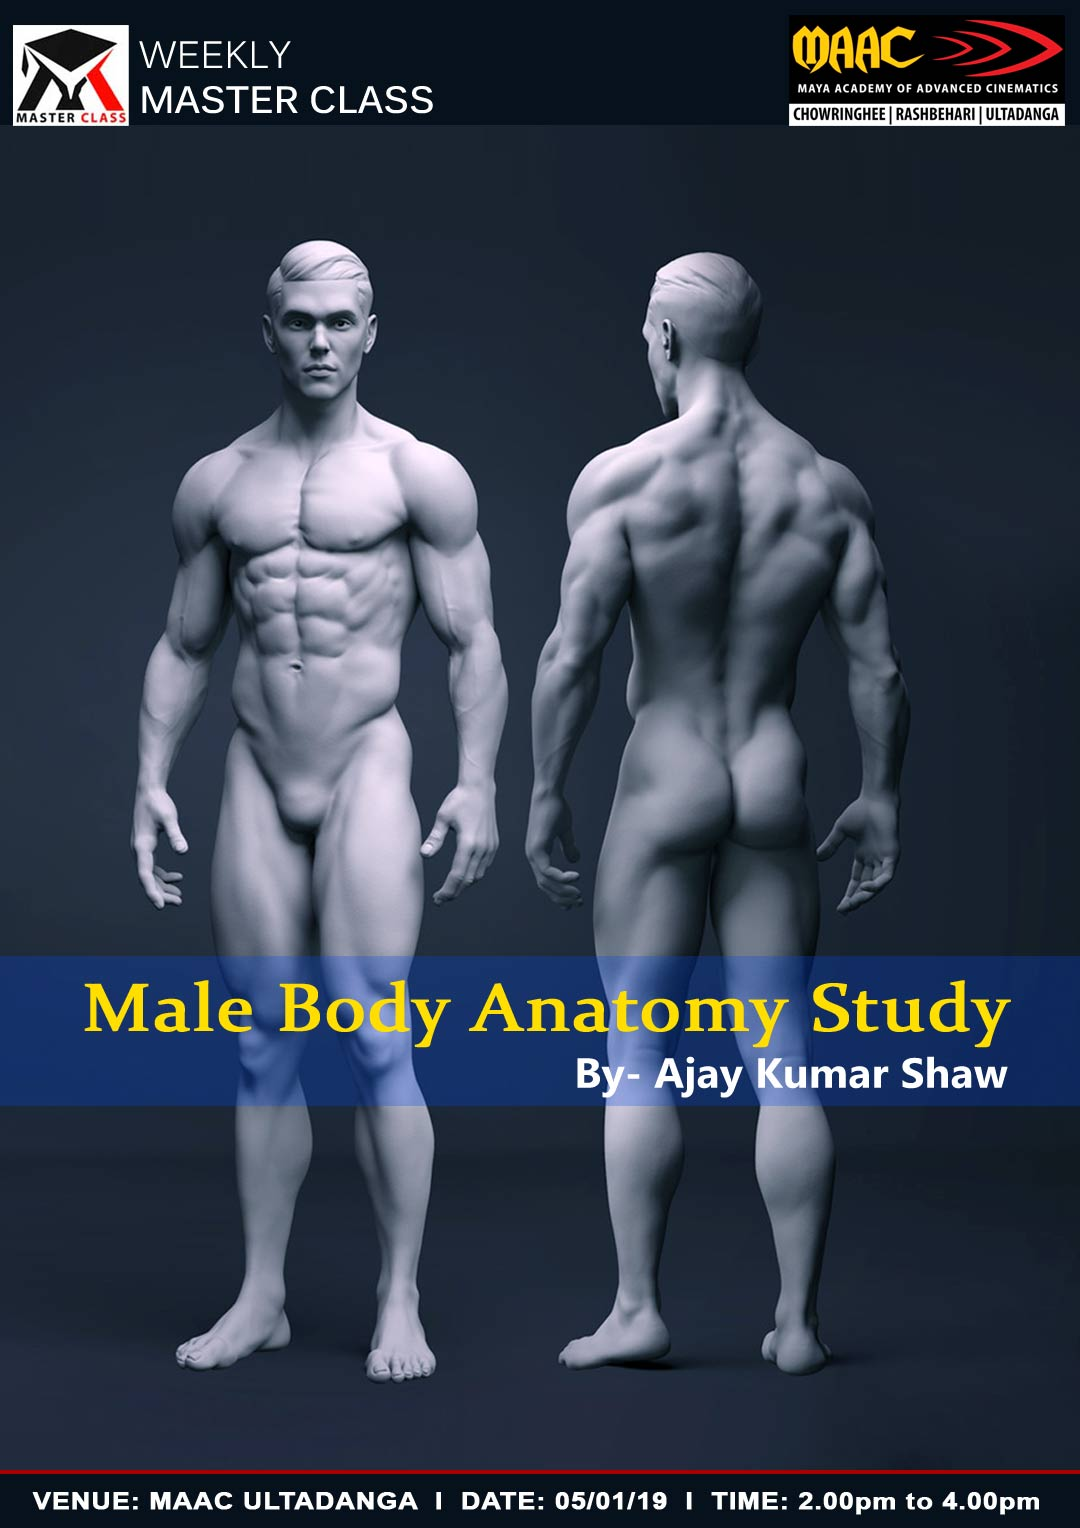 Weekly Master Class on Male Body Anatomy Study